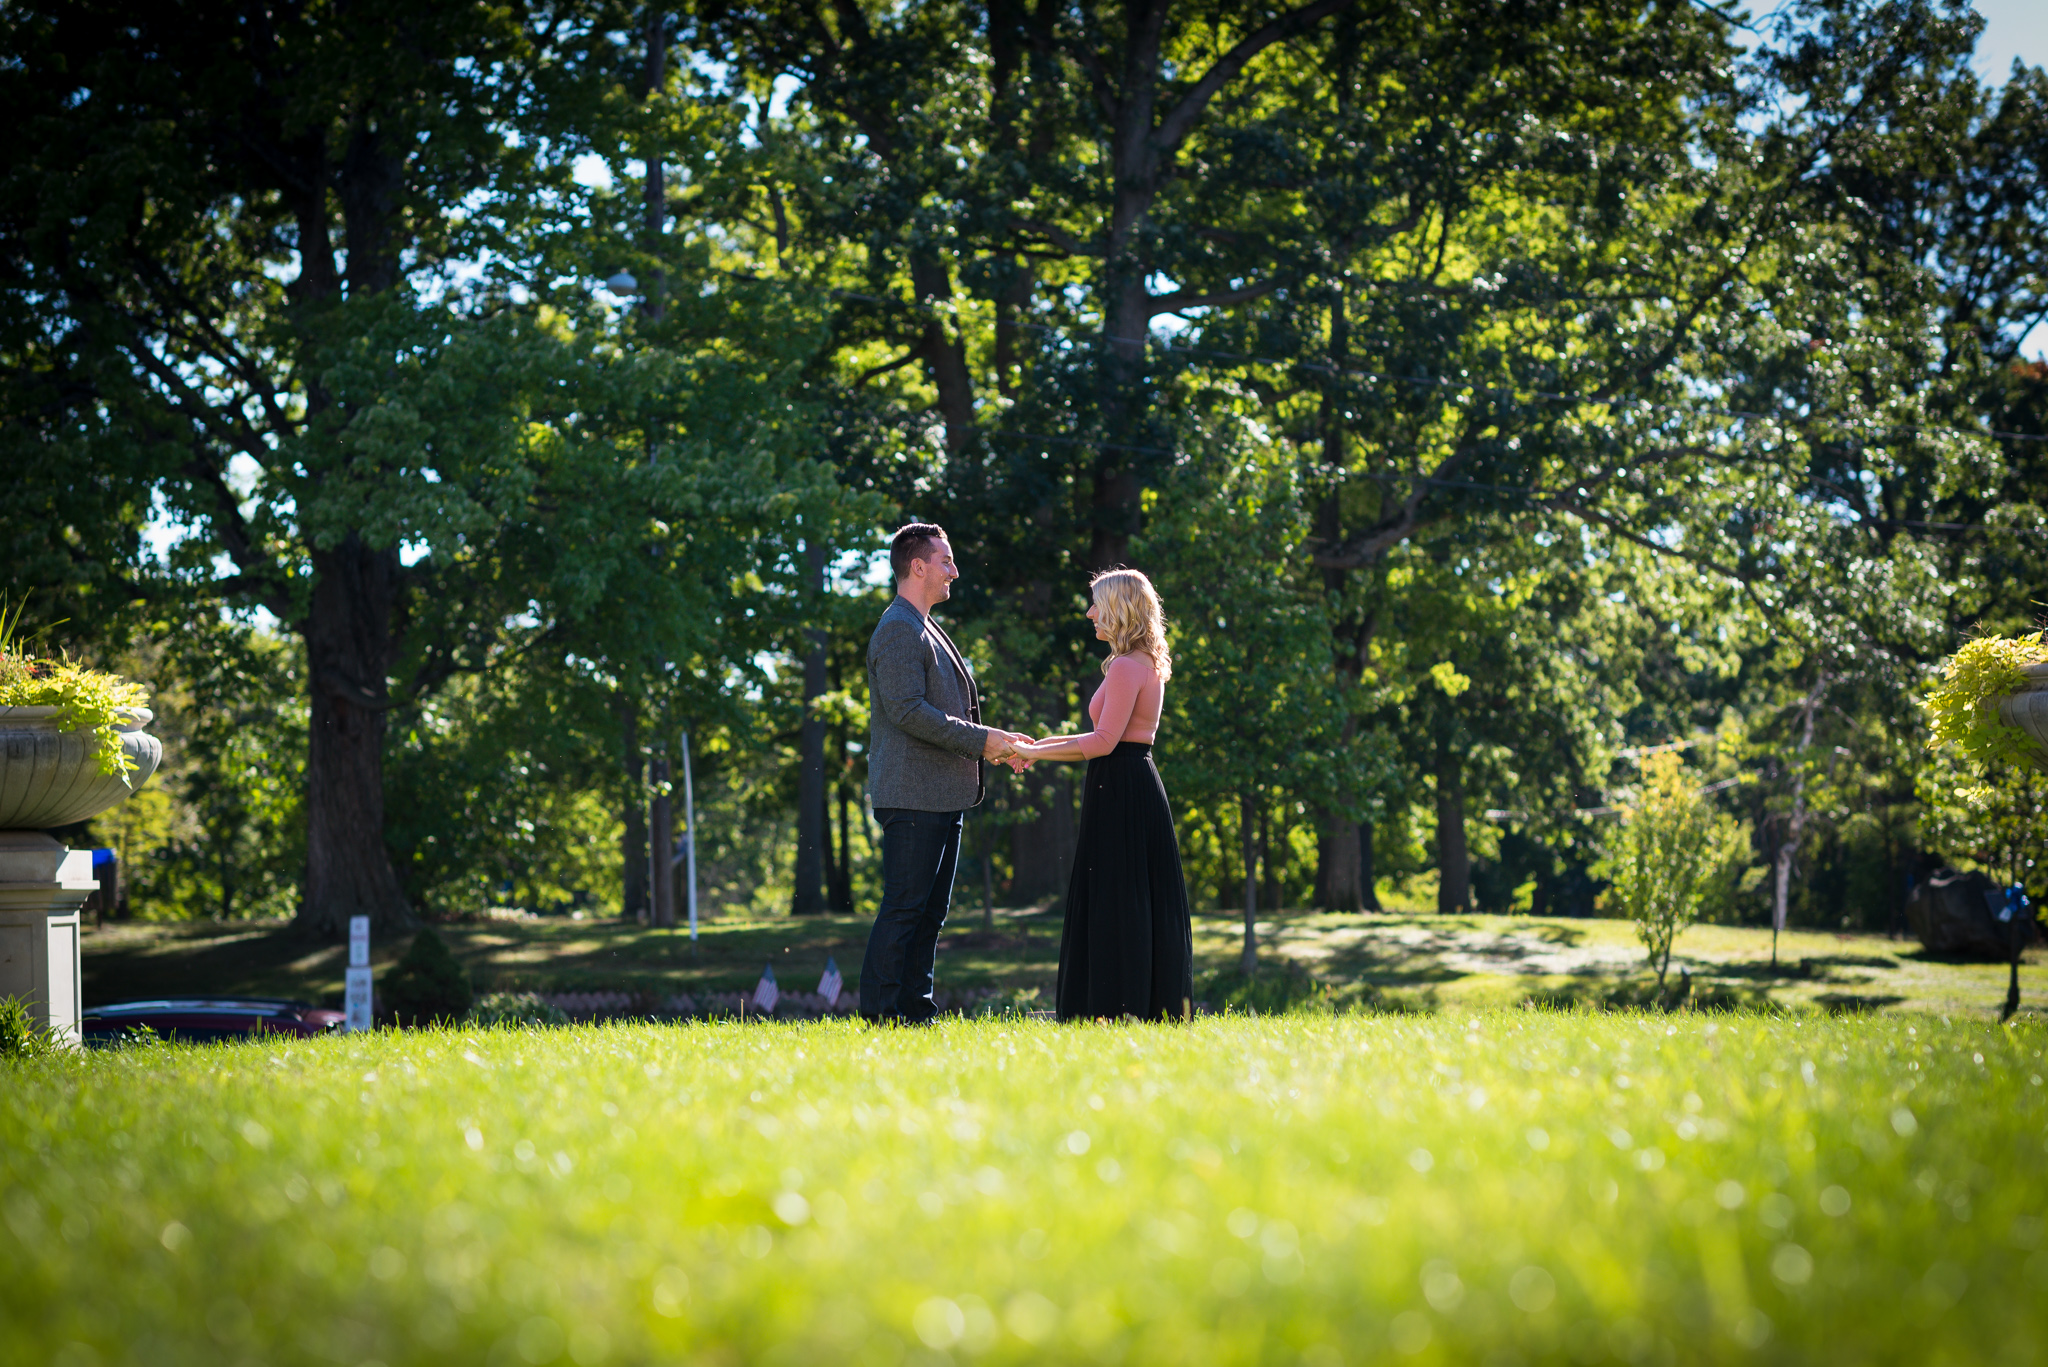 Mindy-Engagement-photography-wedding-photographer-northeast-PA-Scranton-Poconos-1.jpg